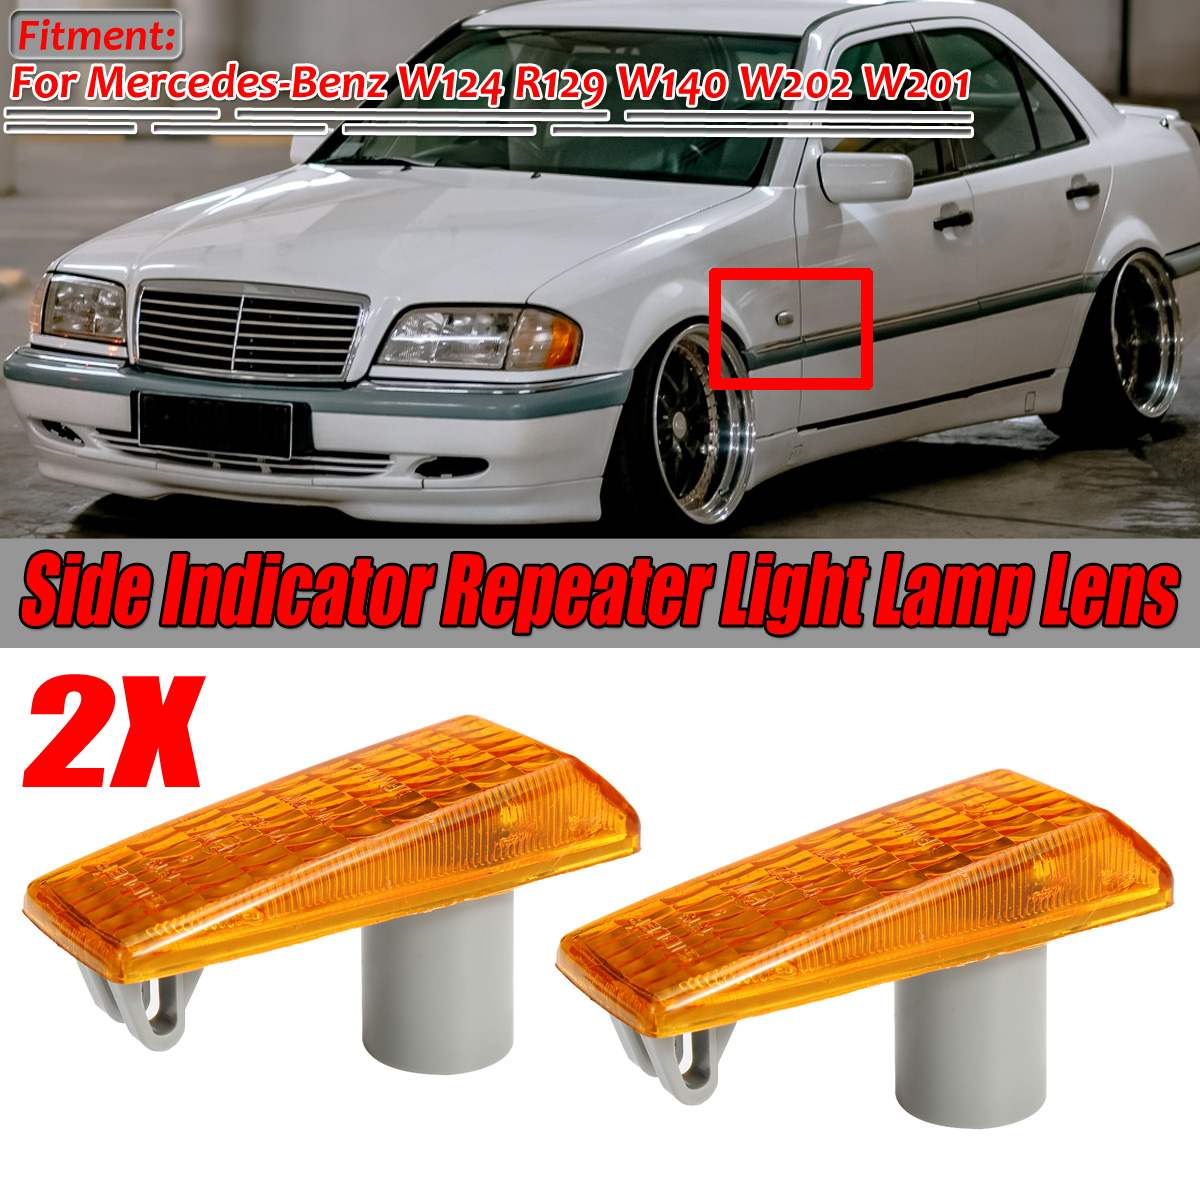 New 2PCS W124 Car Side Marker Light Indicator Repeater Light Lamp Lens Cover Shell For Mercedes ForBenz W124 R129 W140 W202 W201